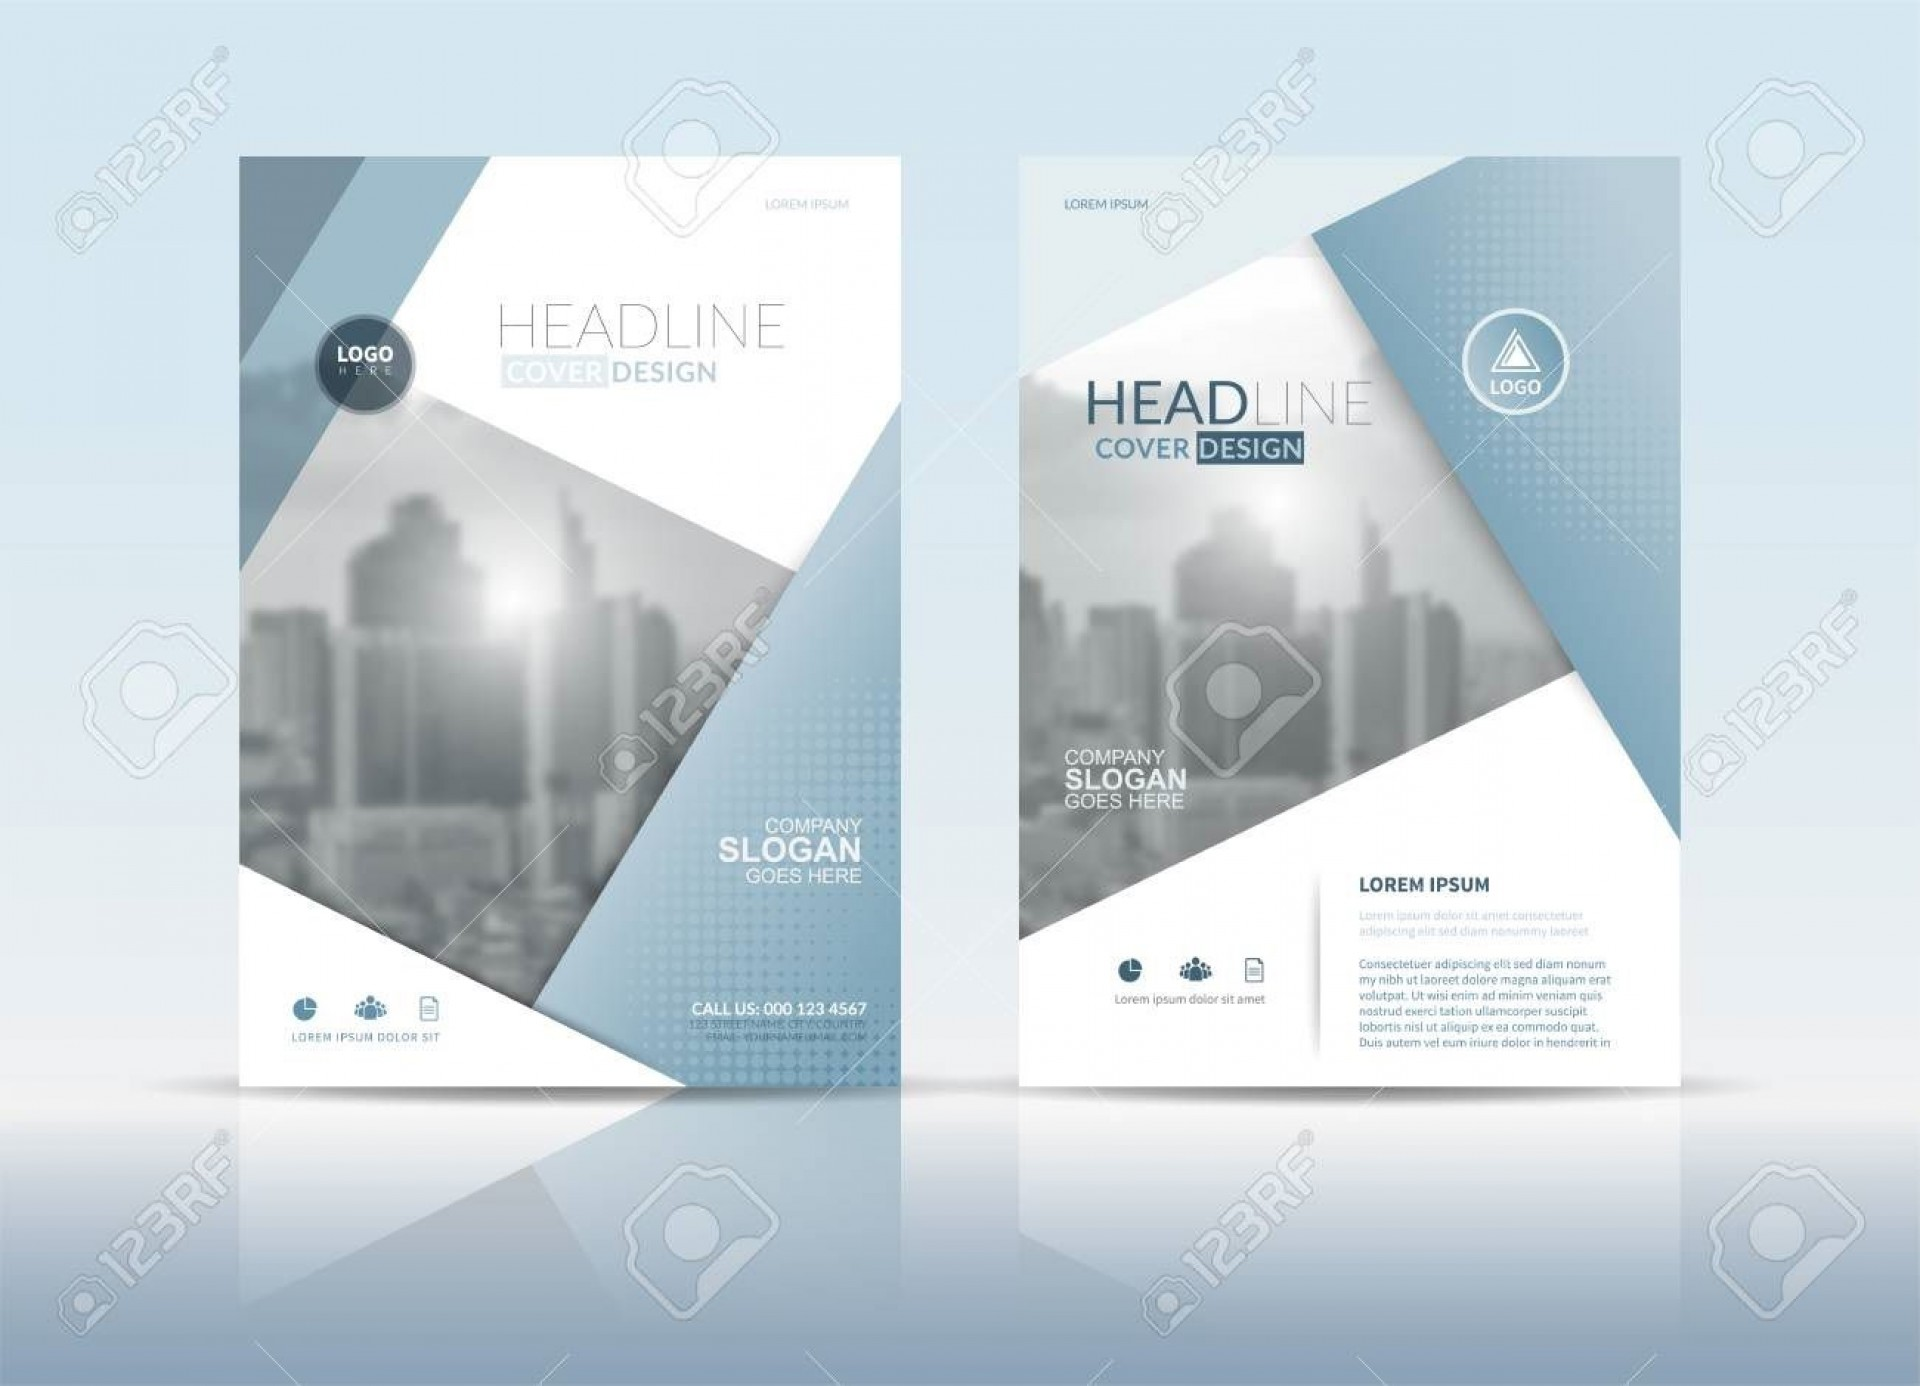 003 Dreaded Free Download Annual Report Cover Design Template Inspiration  Indesign In Word1920